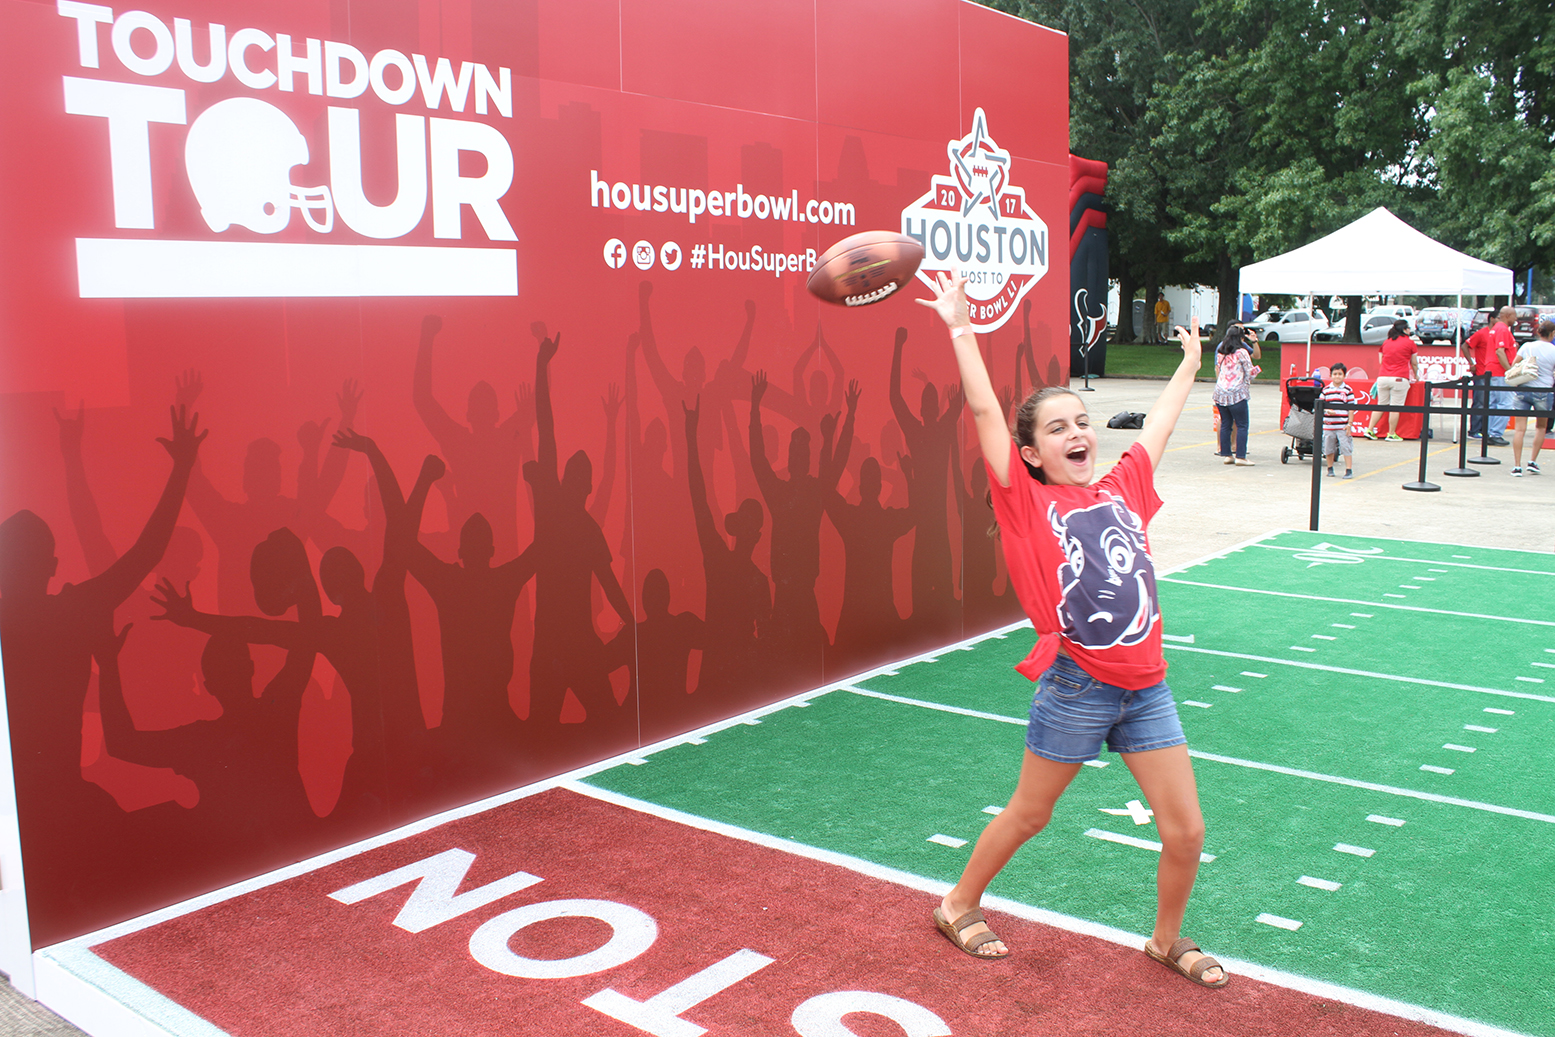 super bowl touchdown tour